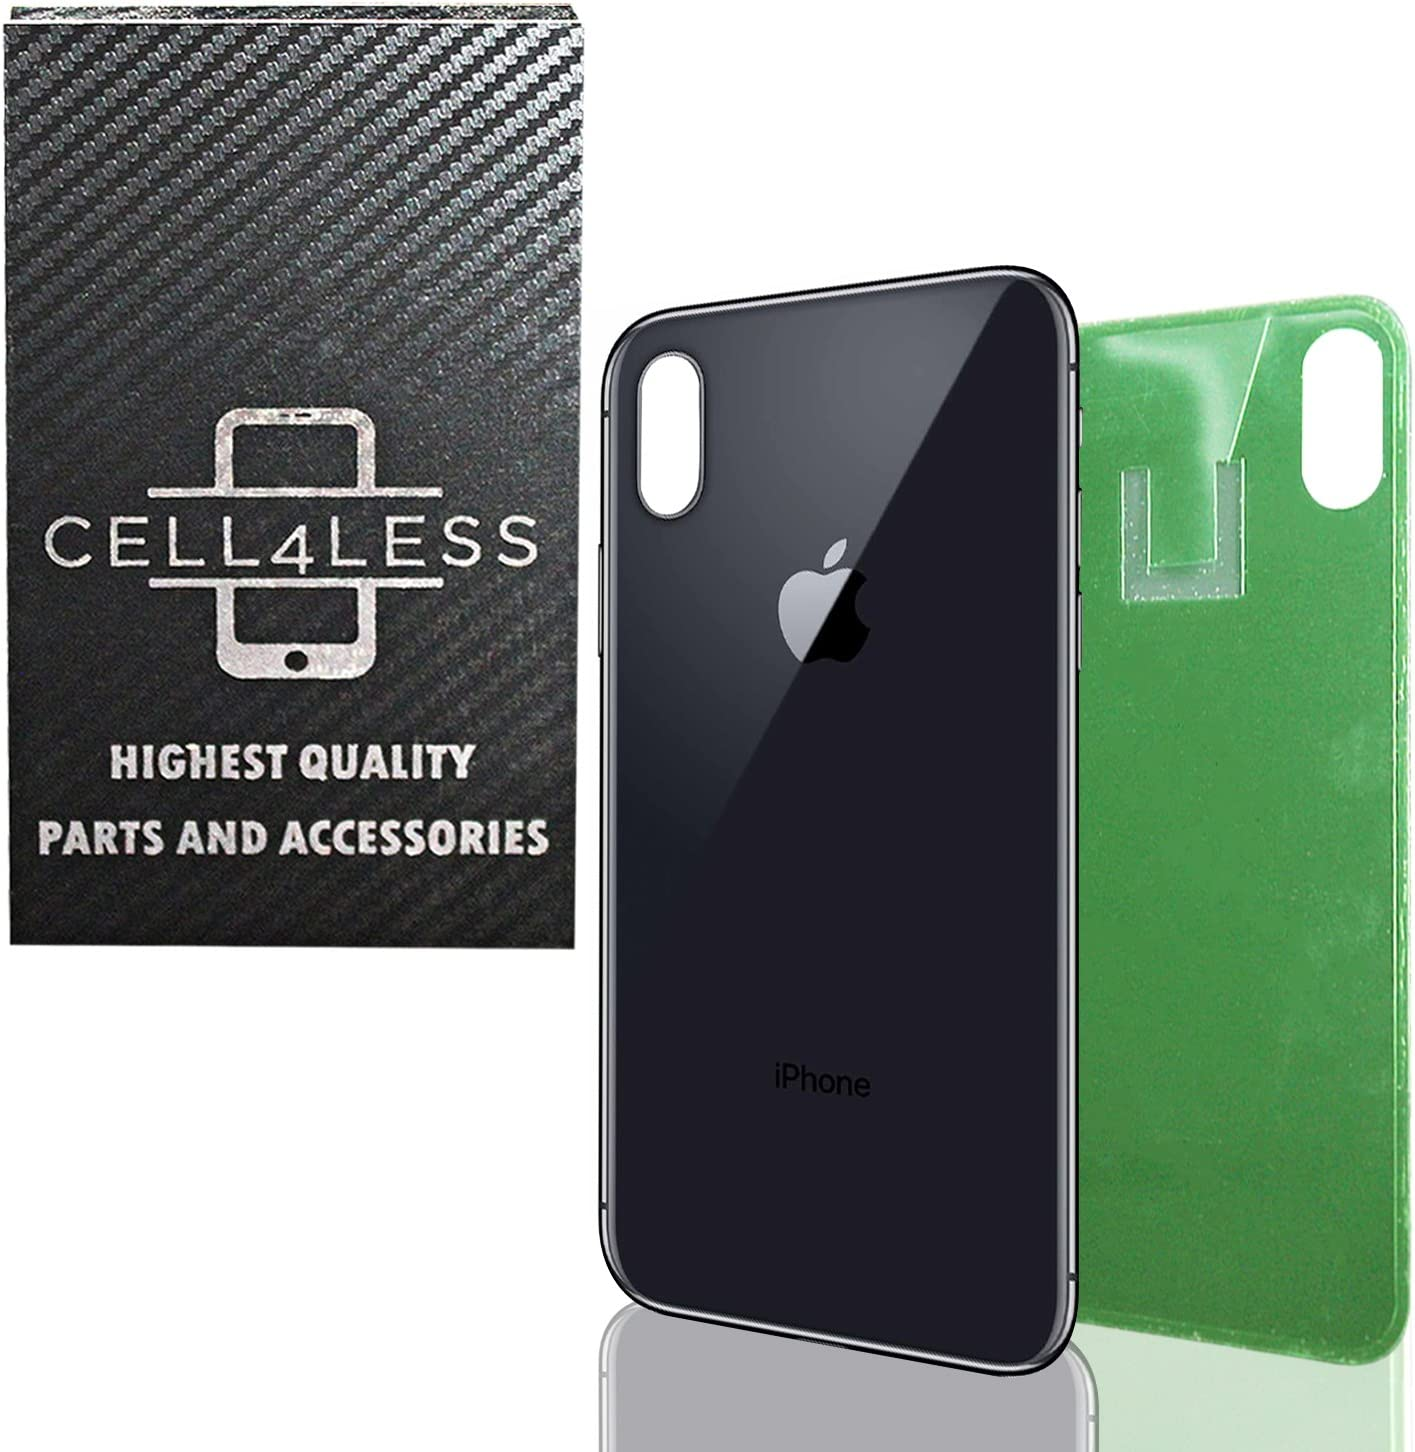 CELL4LESS Compatible Replacement for The iPhone X Back Glass Cover OEM Quality Battery Door Replacement w//Adhesive /& Removal Tool Space Gray